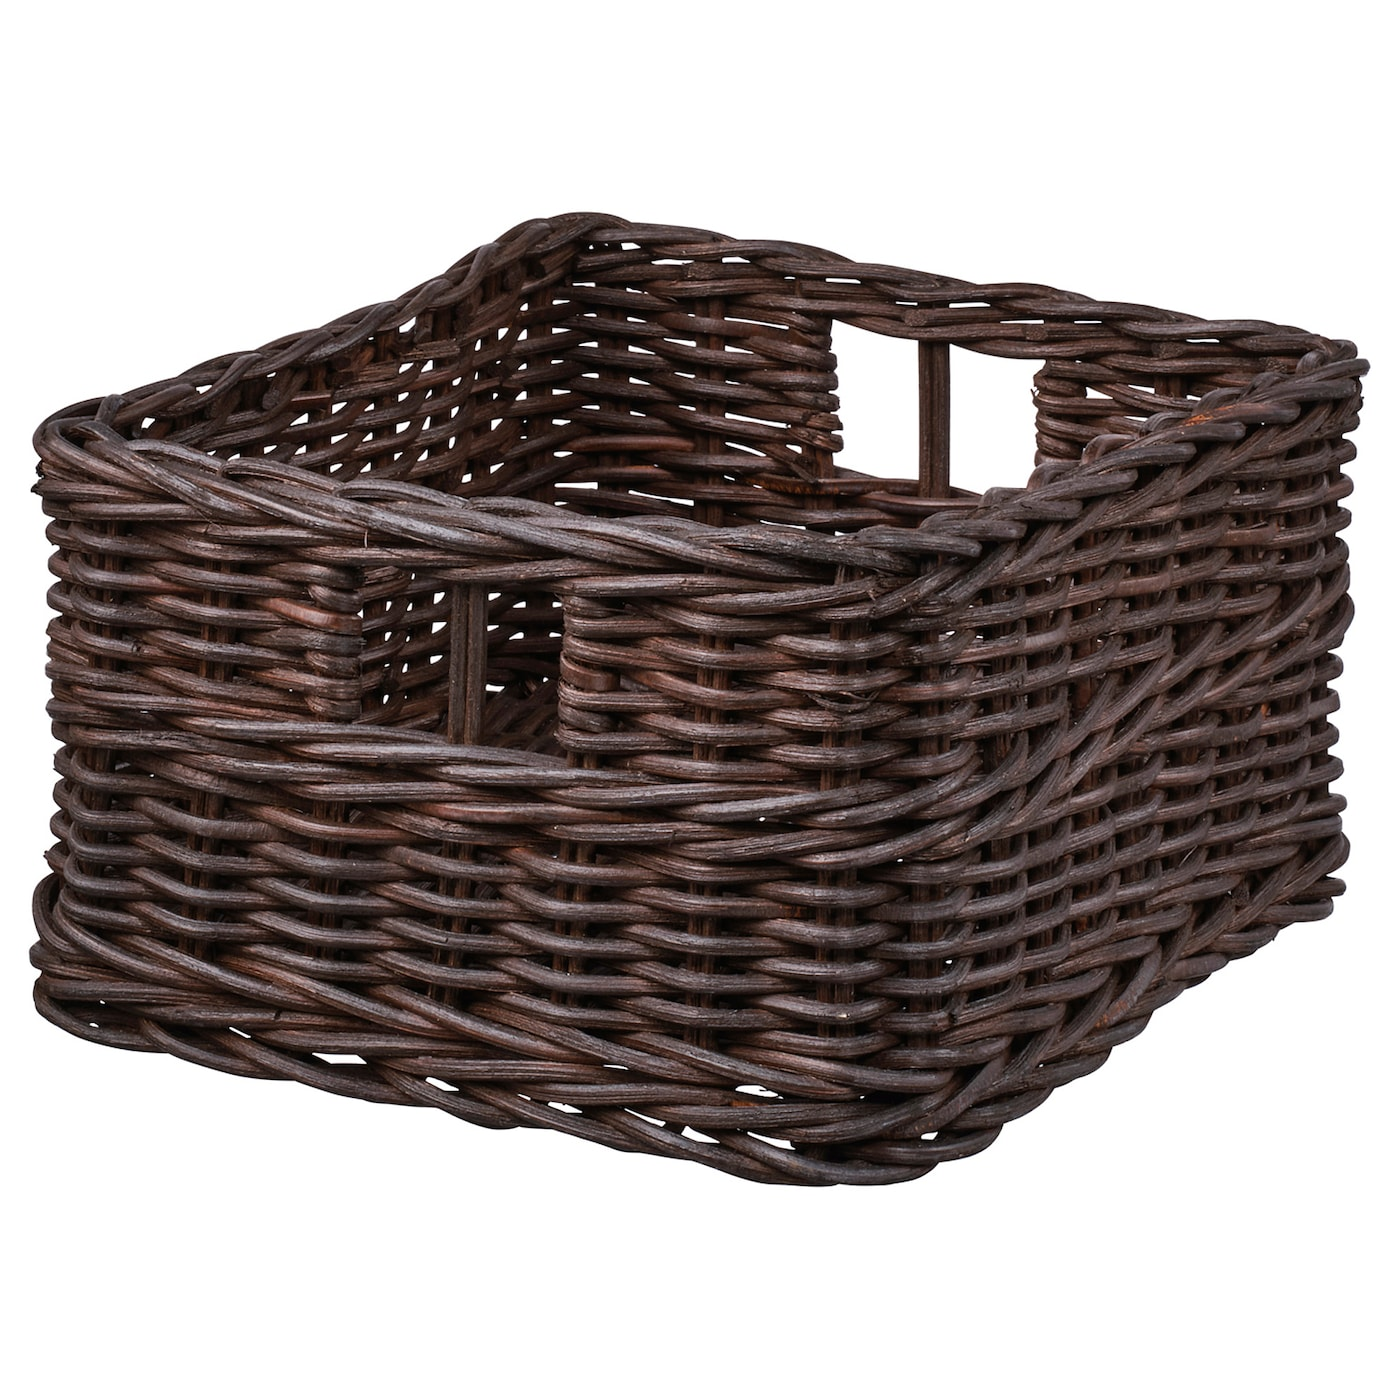 10 Inch Wicker Hamper 11 25 19 Barbecue Outdoor Dining Garden Outdoors